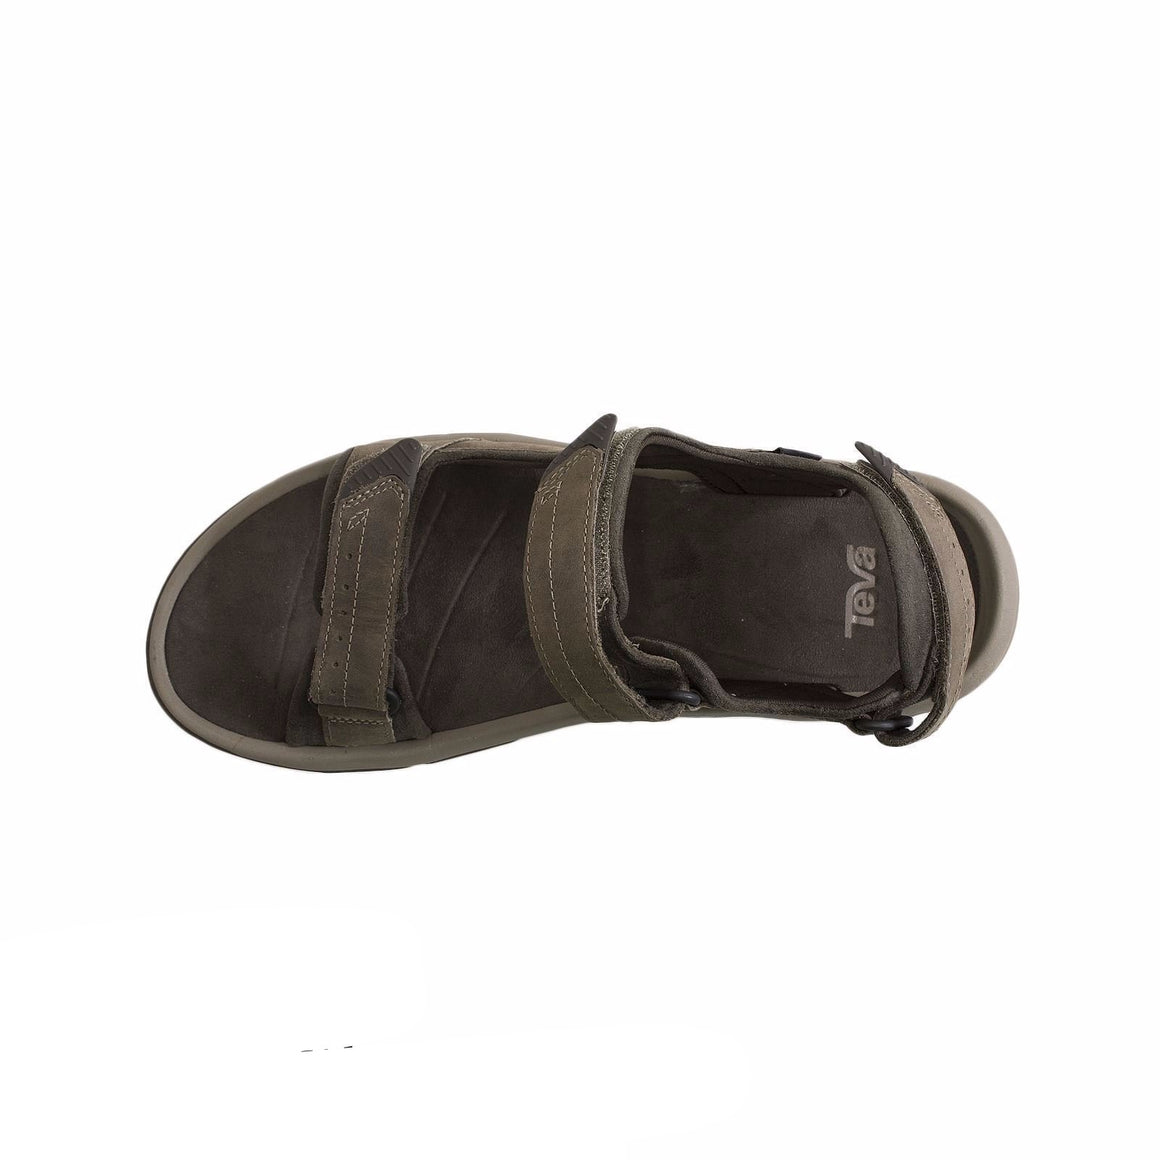 Teva Langdon Walnut Sandals